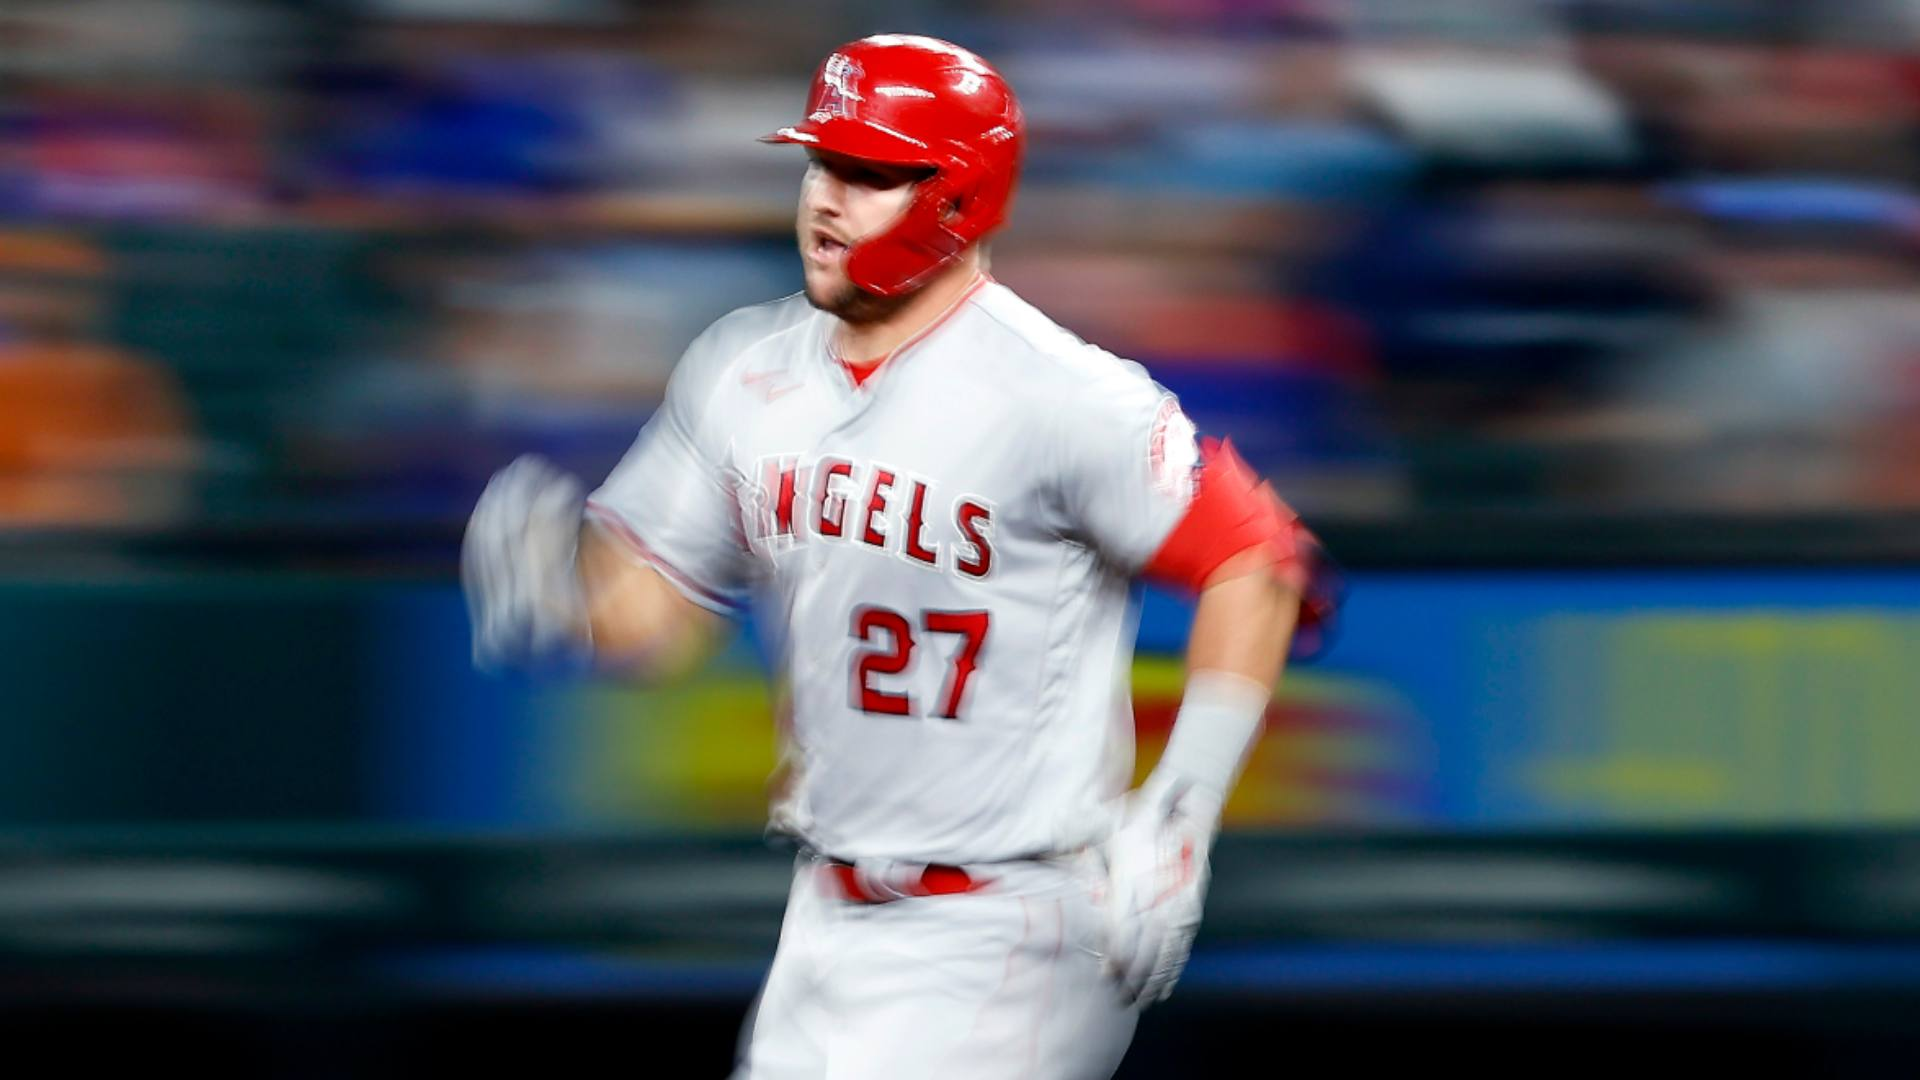 Mike Trout injury update: Angels say there are no plans to shut down star outfielder